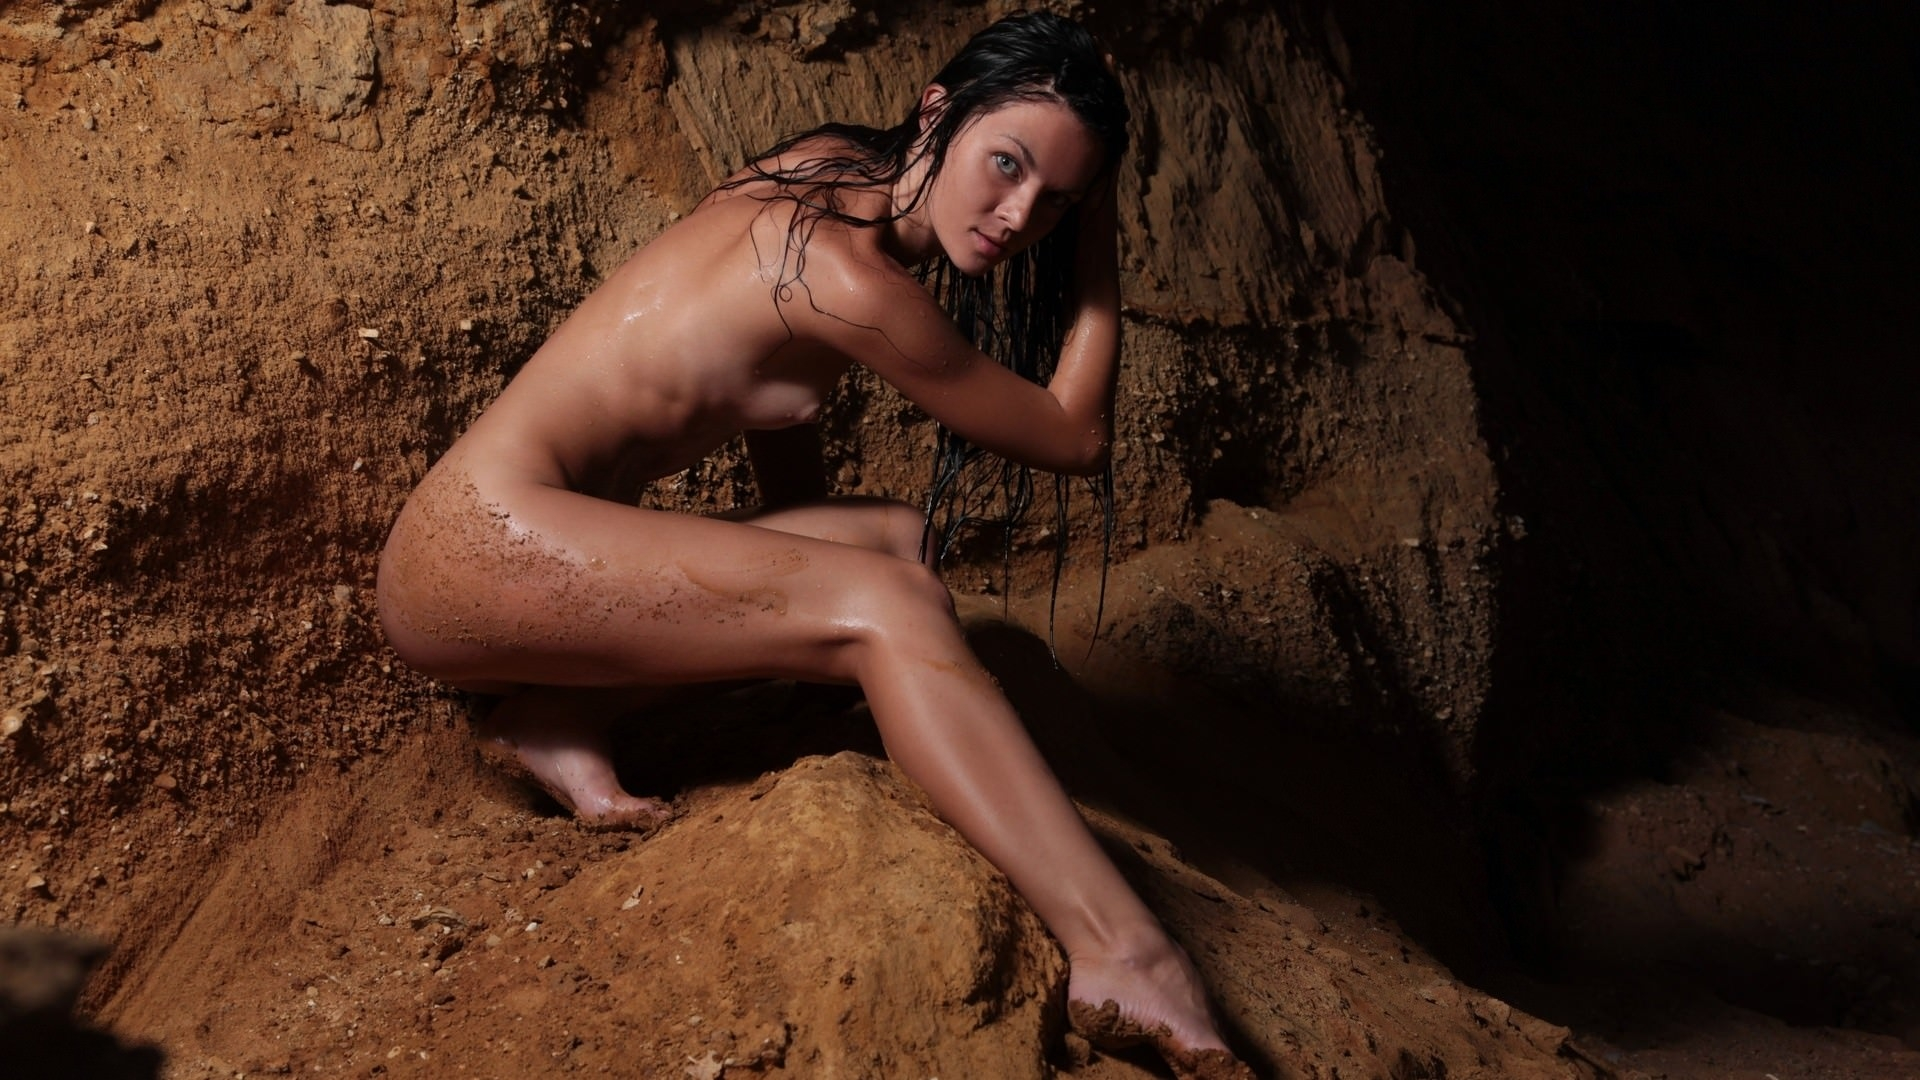 Search results for dirty naked girls